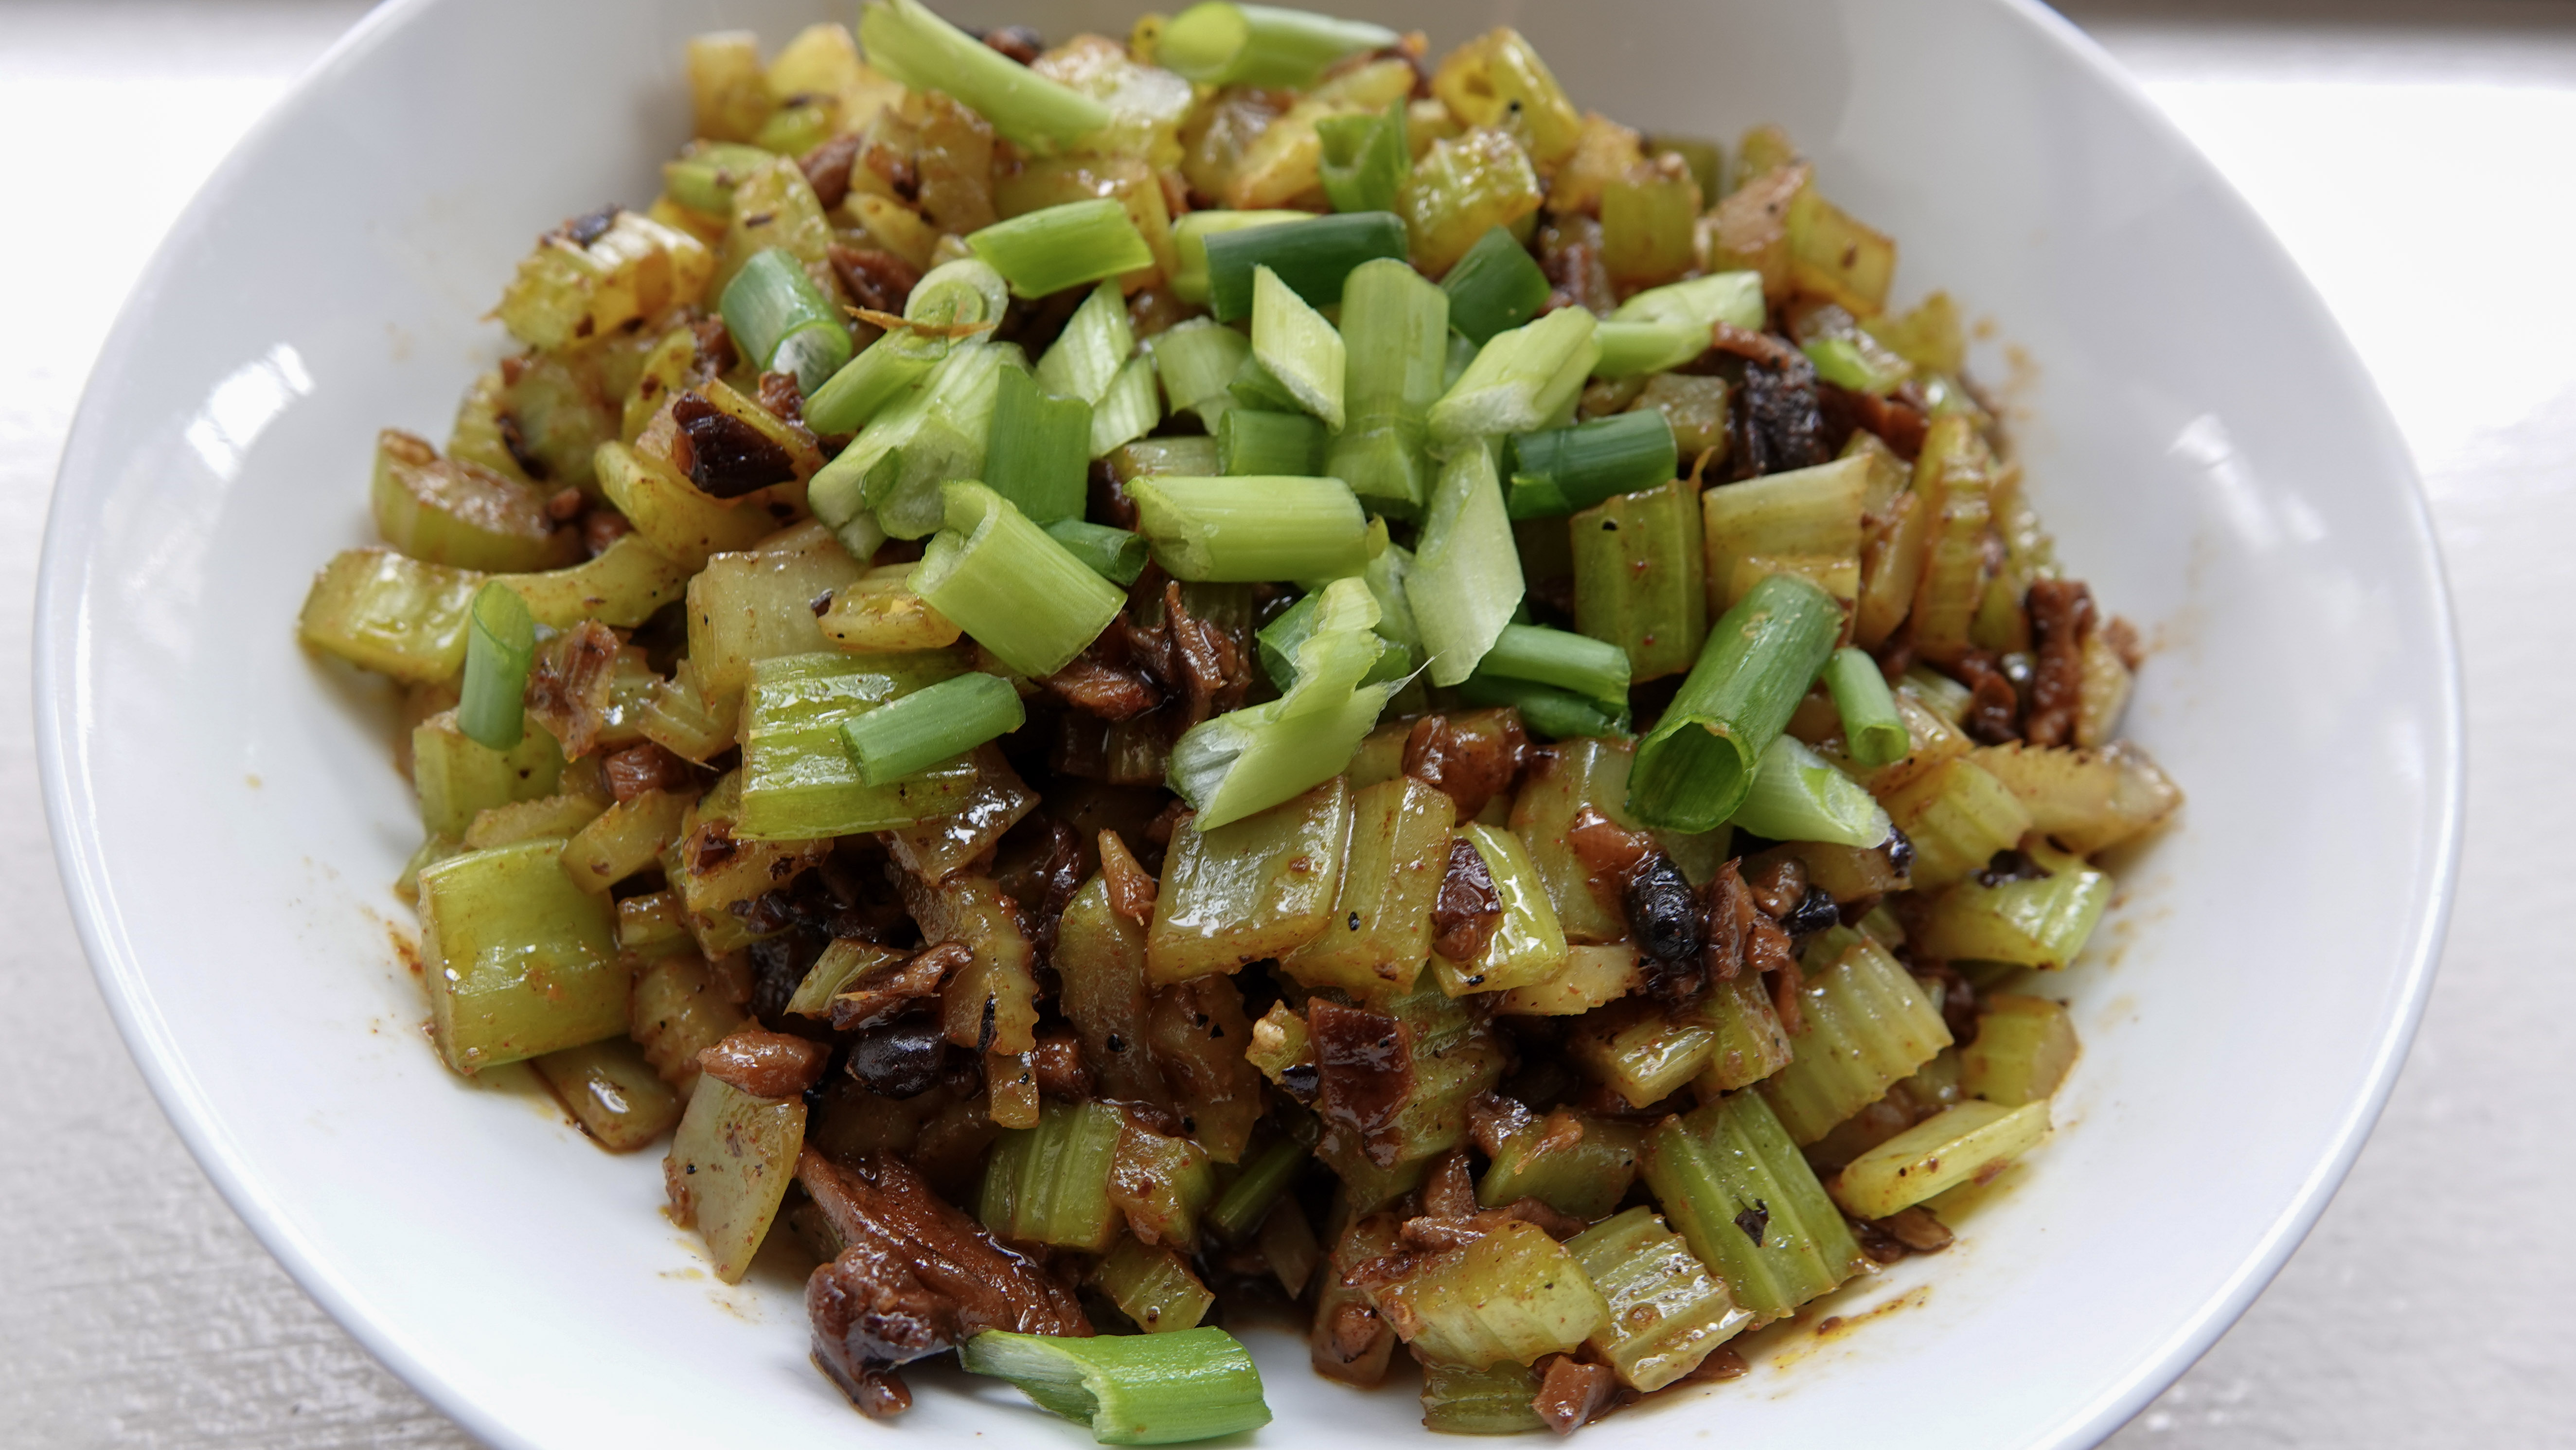 Vegan Sichuan Stir Fried Celery